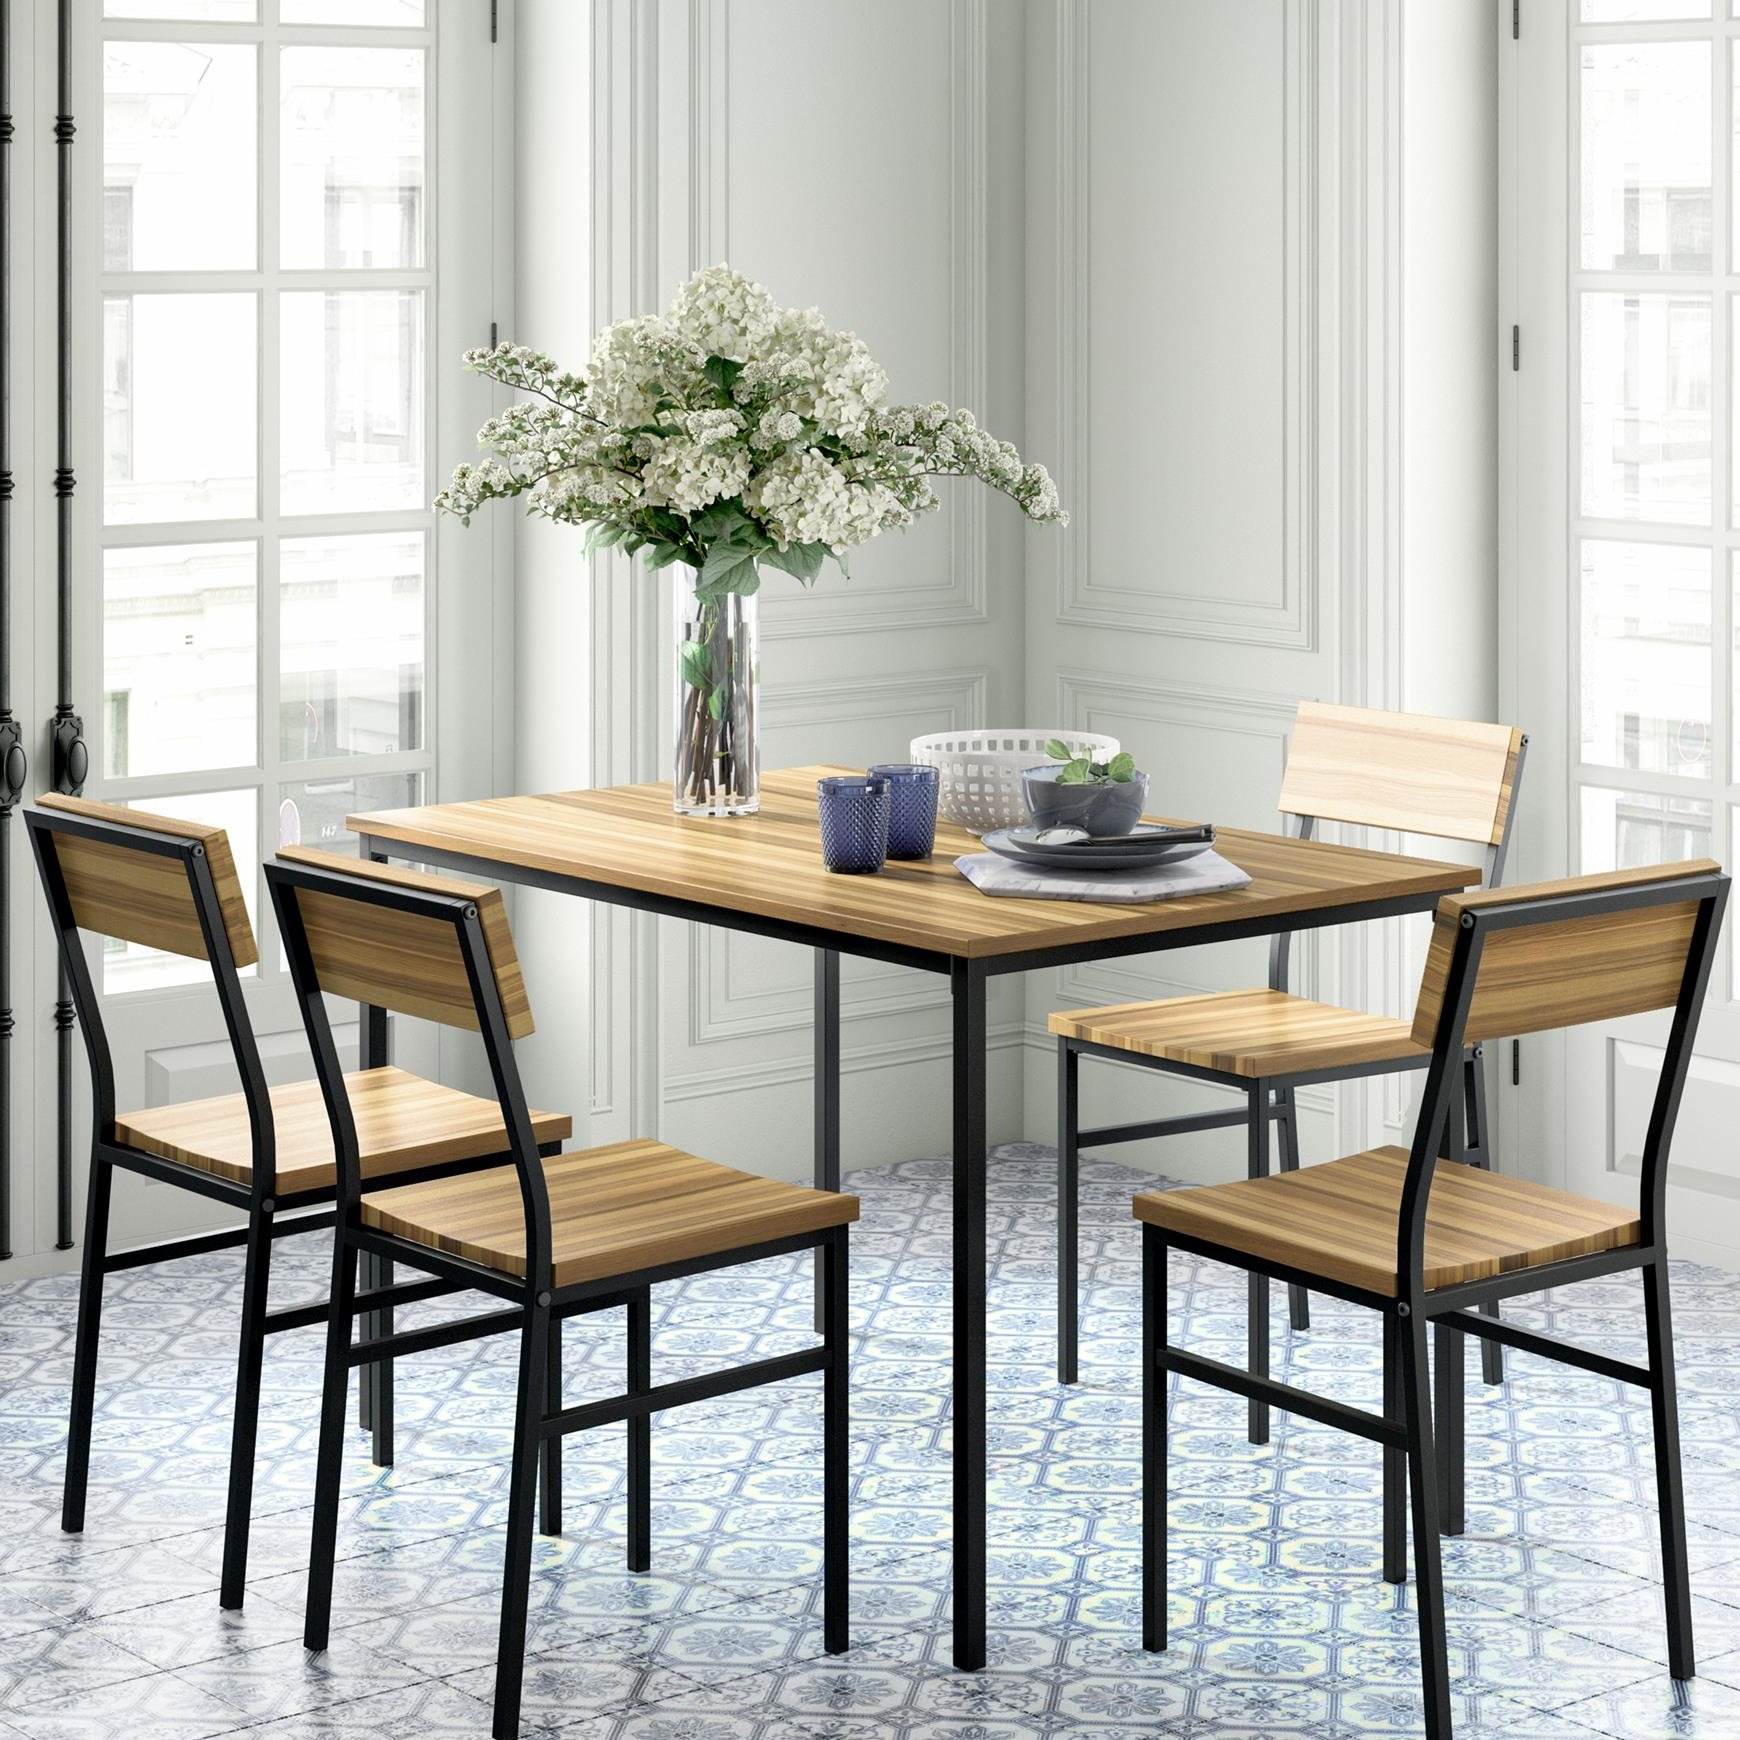 Kieffer 5 Piece Dining Sets Intended For Well Known Novogratz Linden 5 Piece Dining Set (View 12 of 20)